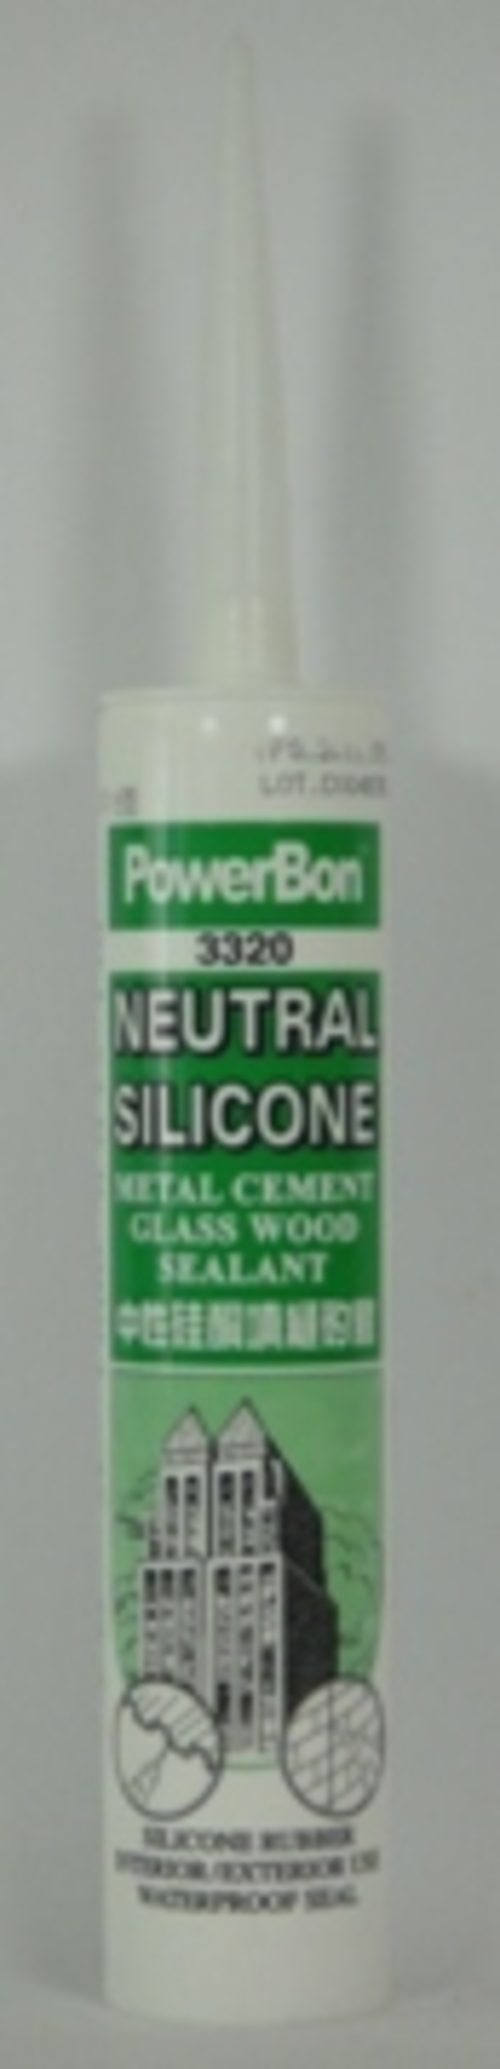 Neutral Silicone Sealant 300ml產品圖